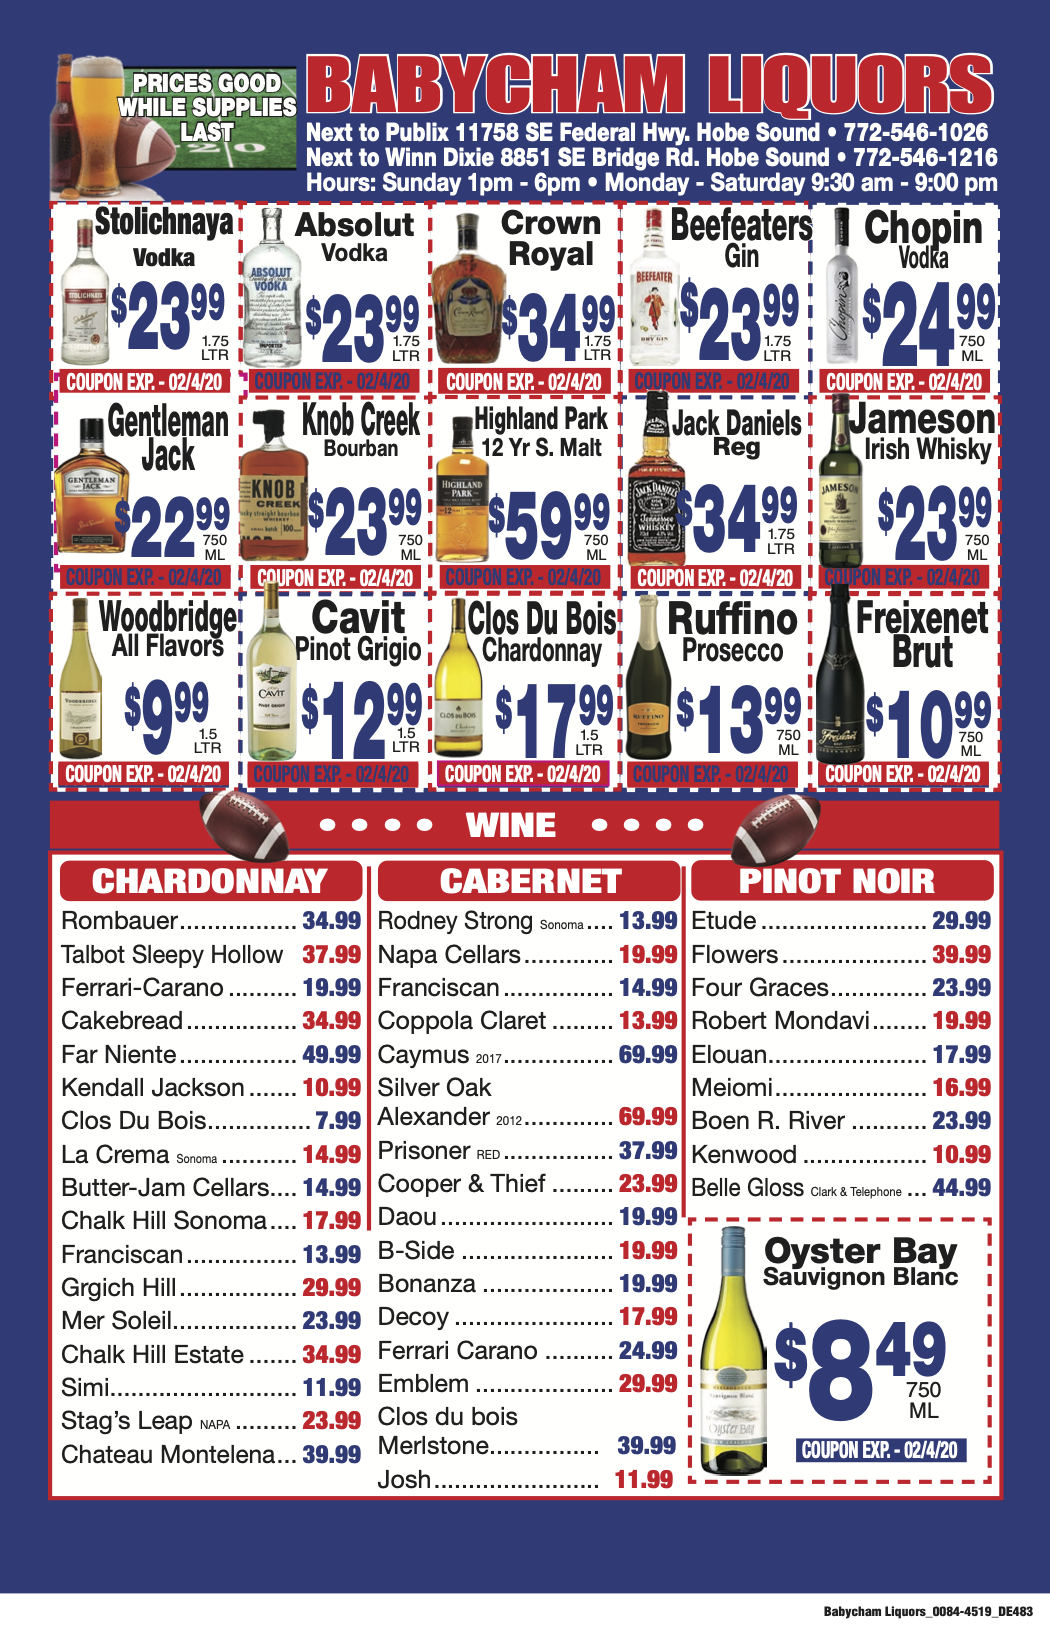 Super Bowl 2020-IN STORE SPECIAL WINE & LIQUOR WEEKLY SALE - ENDS FEBRUARY 2,2020